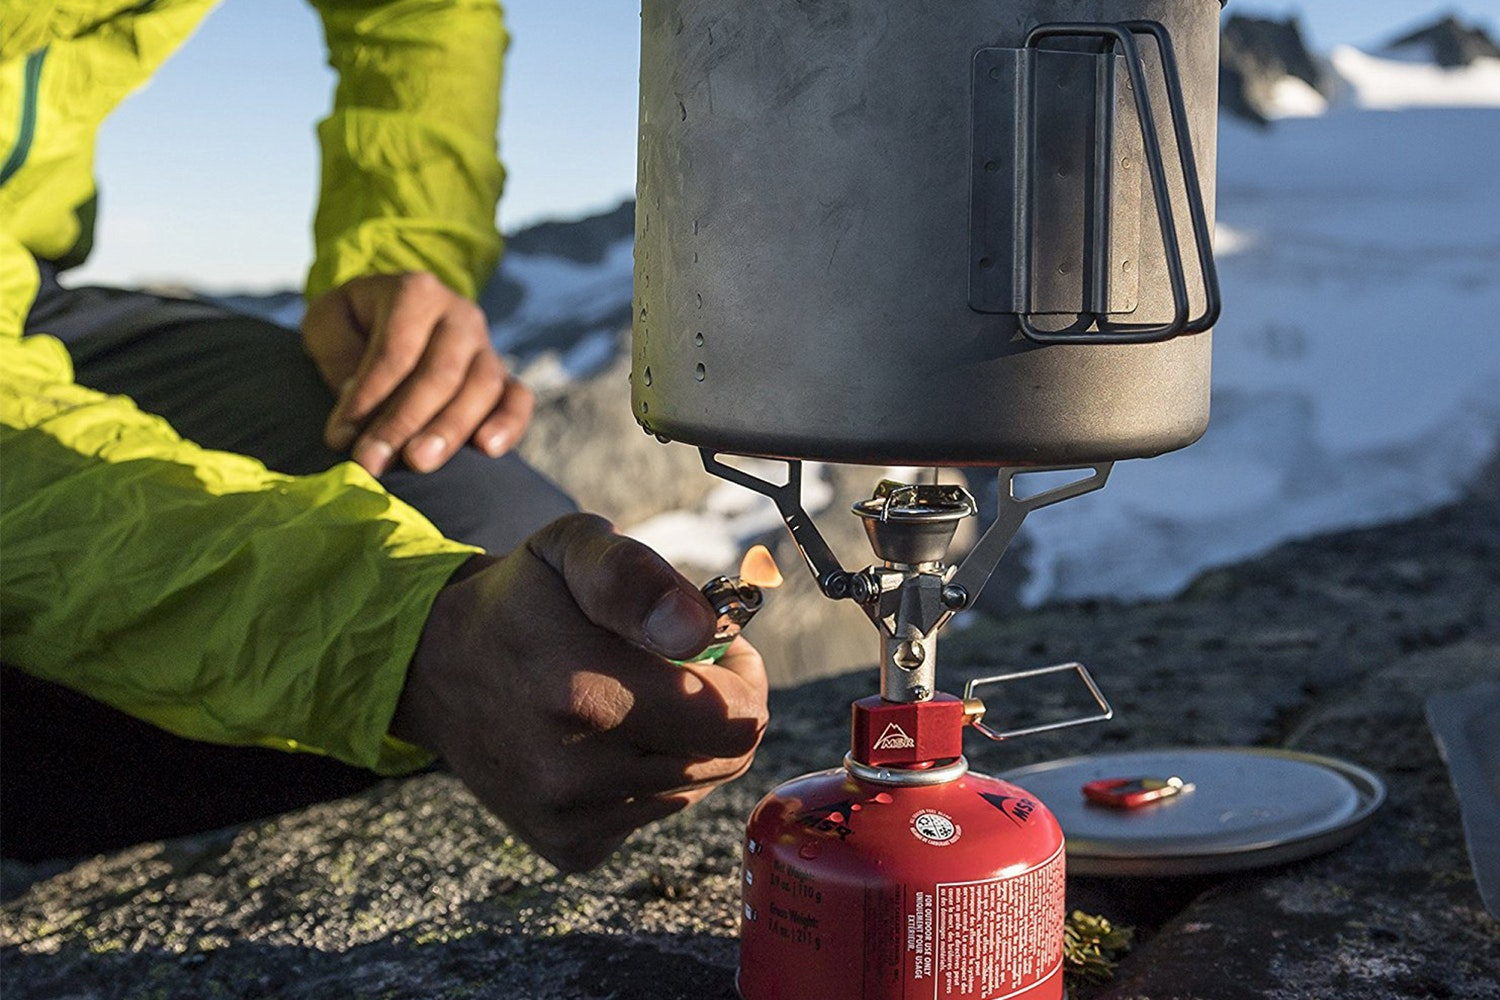 MSR PocketRocket 2 Stove